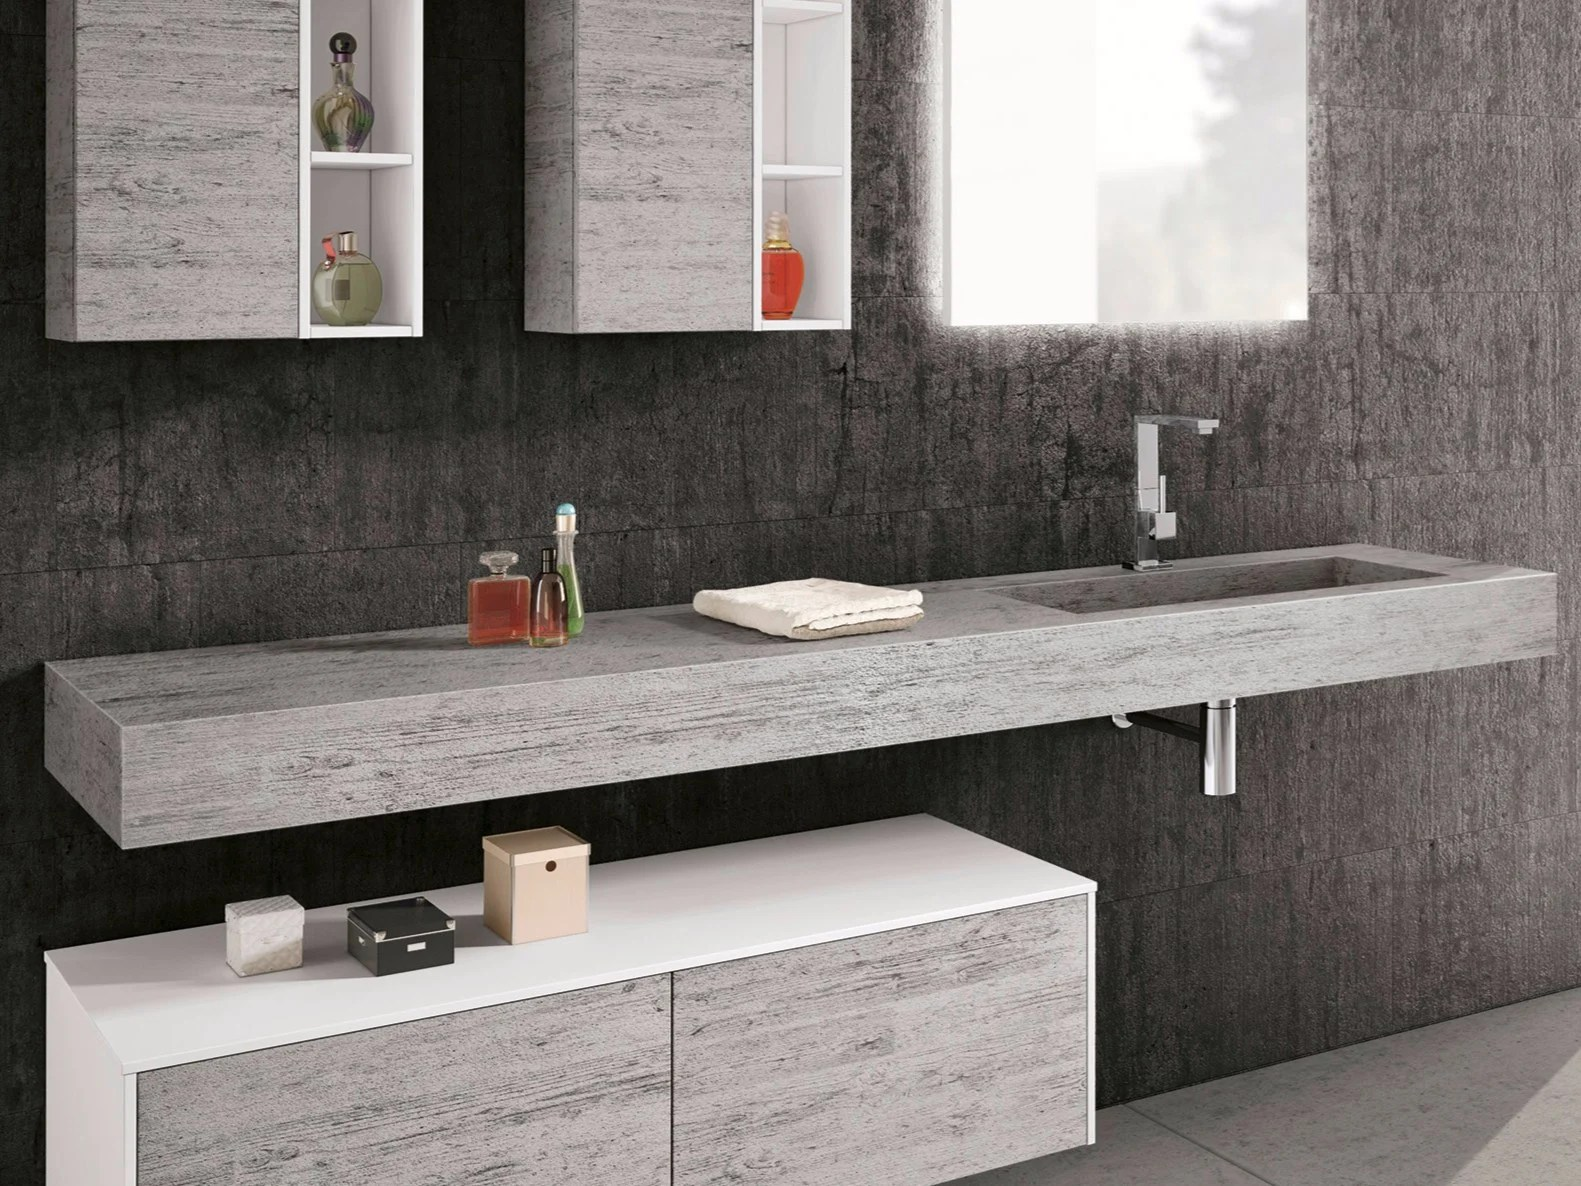 Lavabo Integrato Piano Lavabo In Hpl Con Lavabo Integrato Change Hpl By